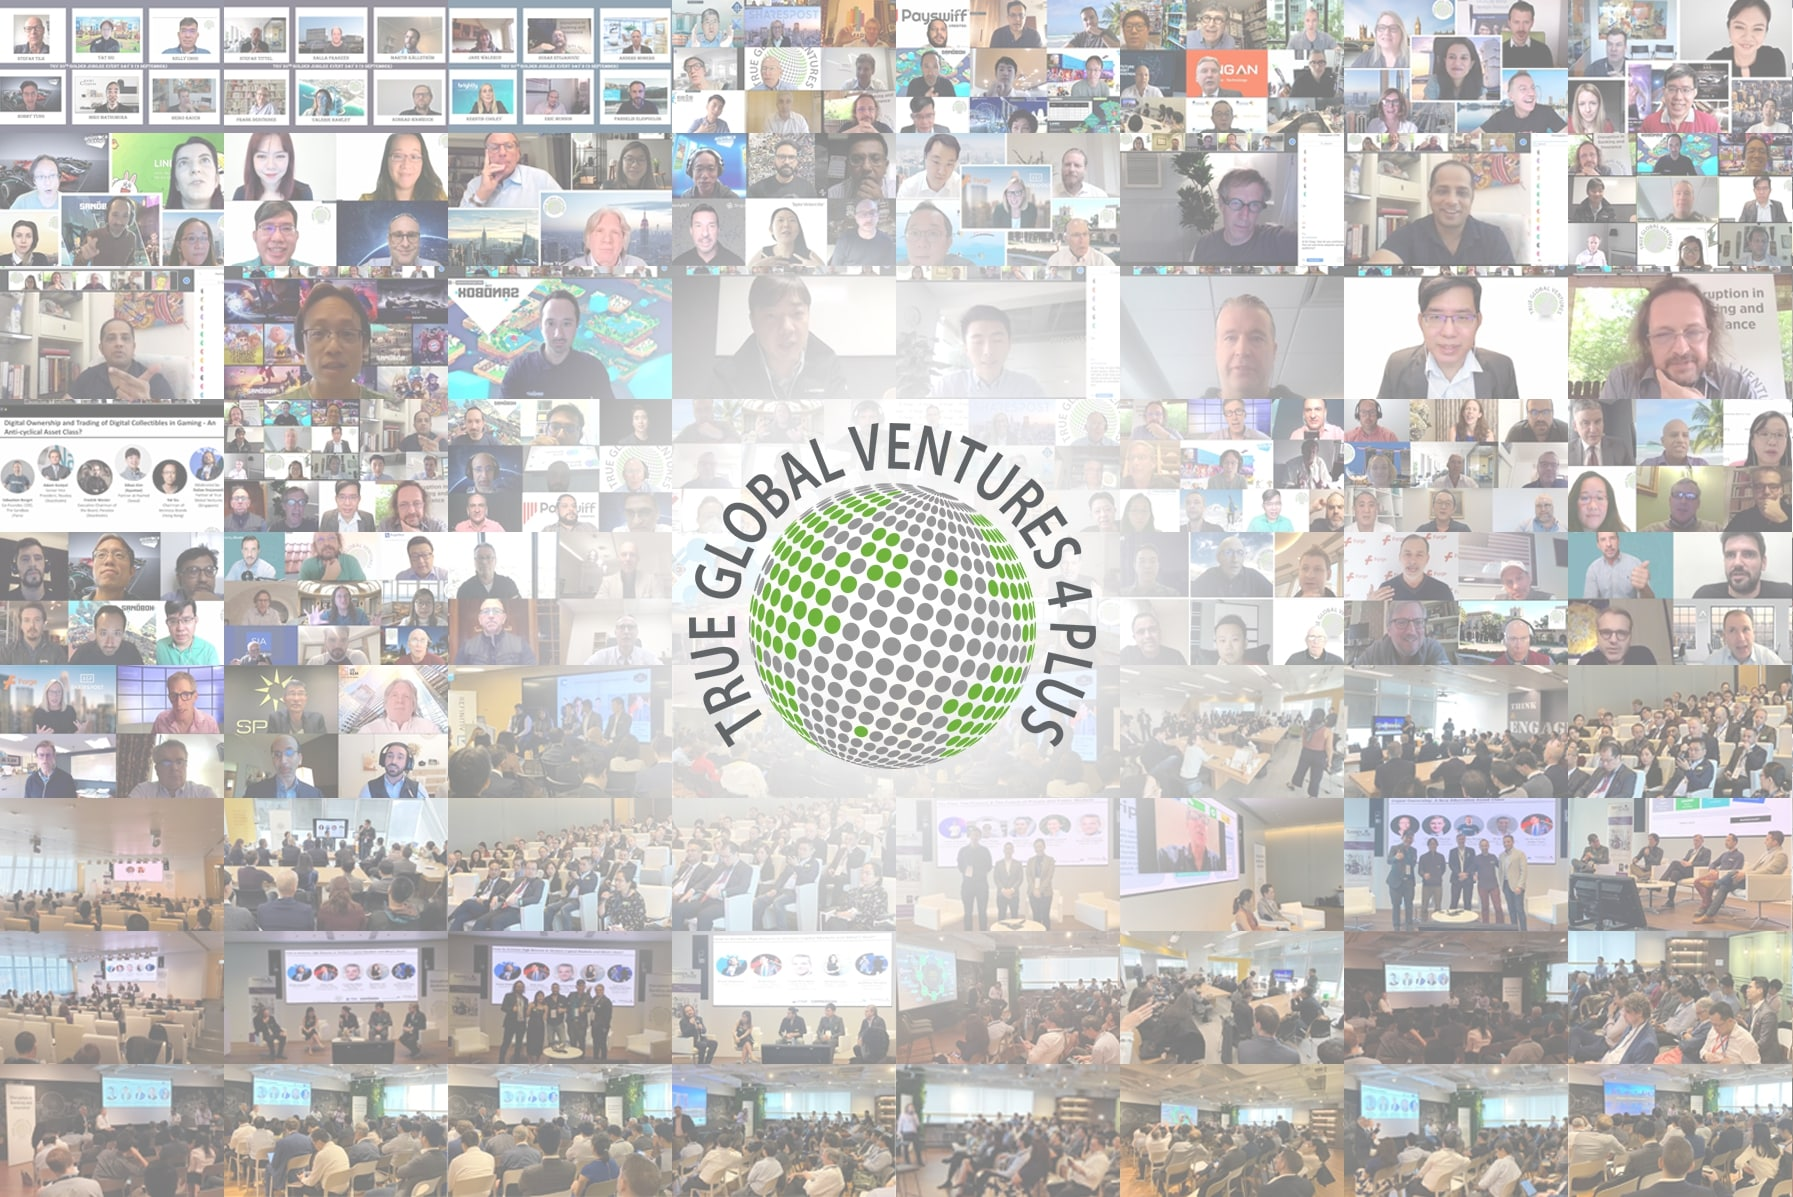 True Global Ventures 4 Plus Worlds First Truly Global Blockchain Equity Fund Oversubscribed Surpassing 100M Target